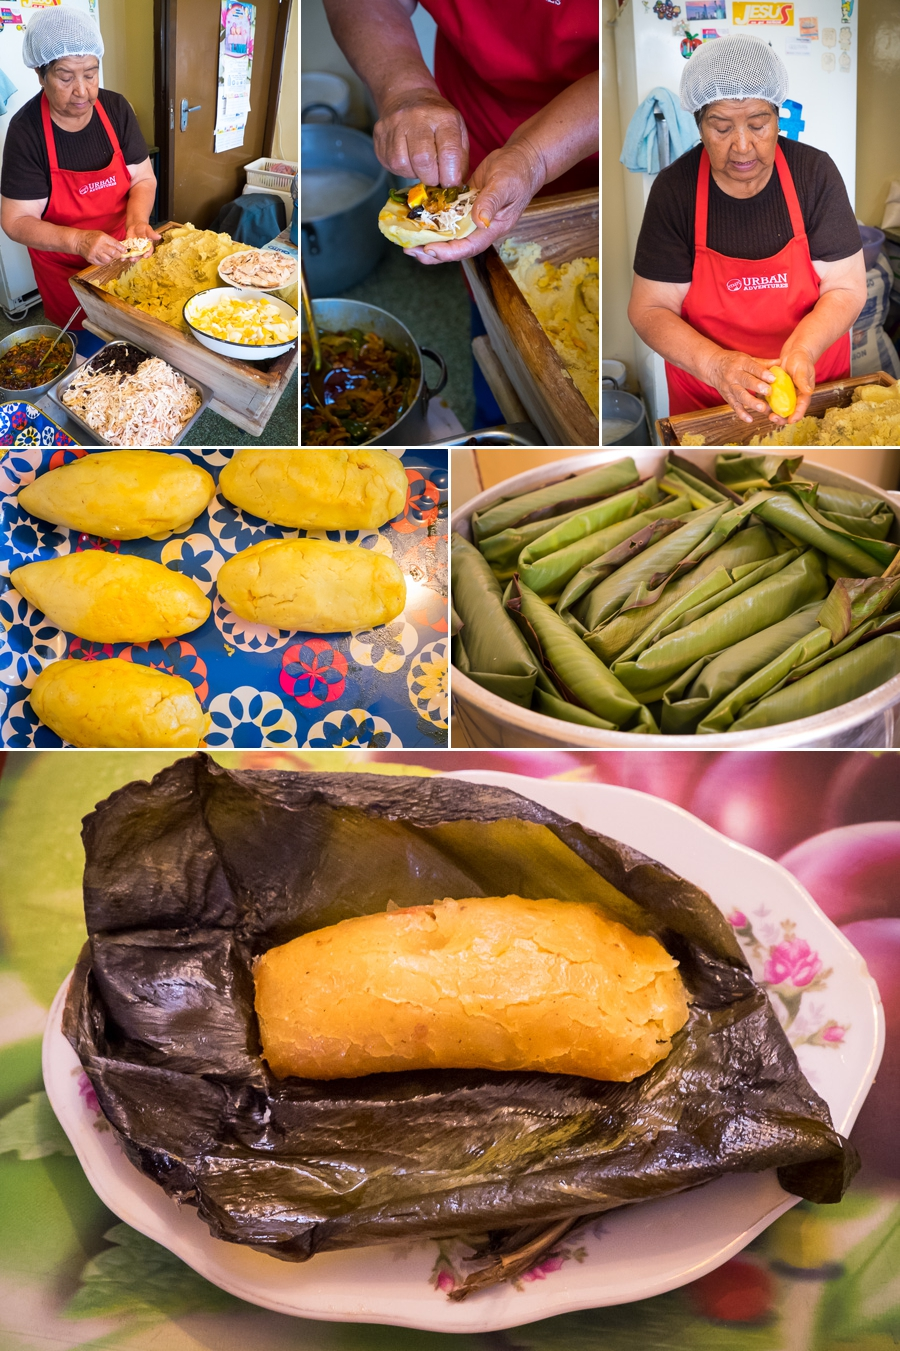 Making Tamales on the Quito Culinary Tour